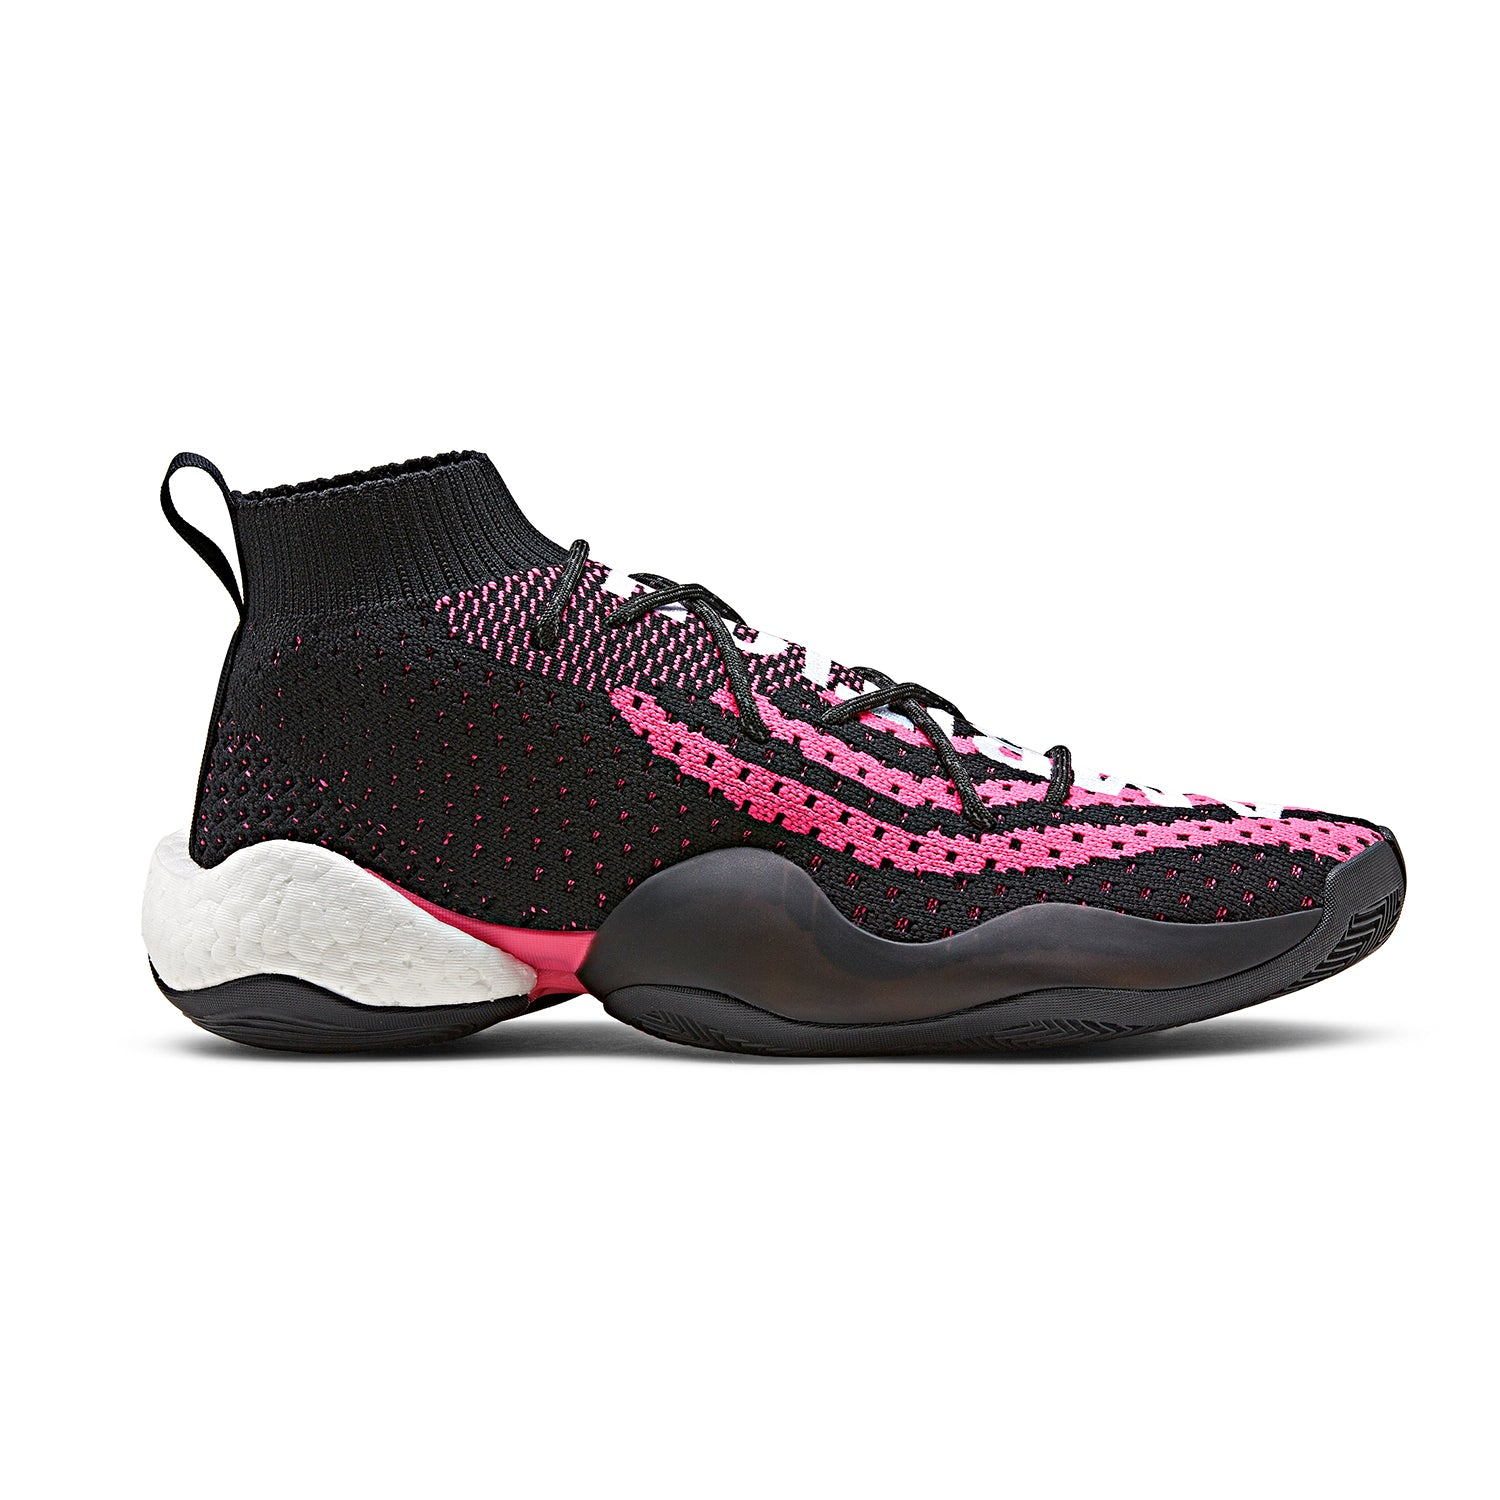 CRAZY BYW LVL X PW BLACK